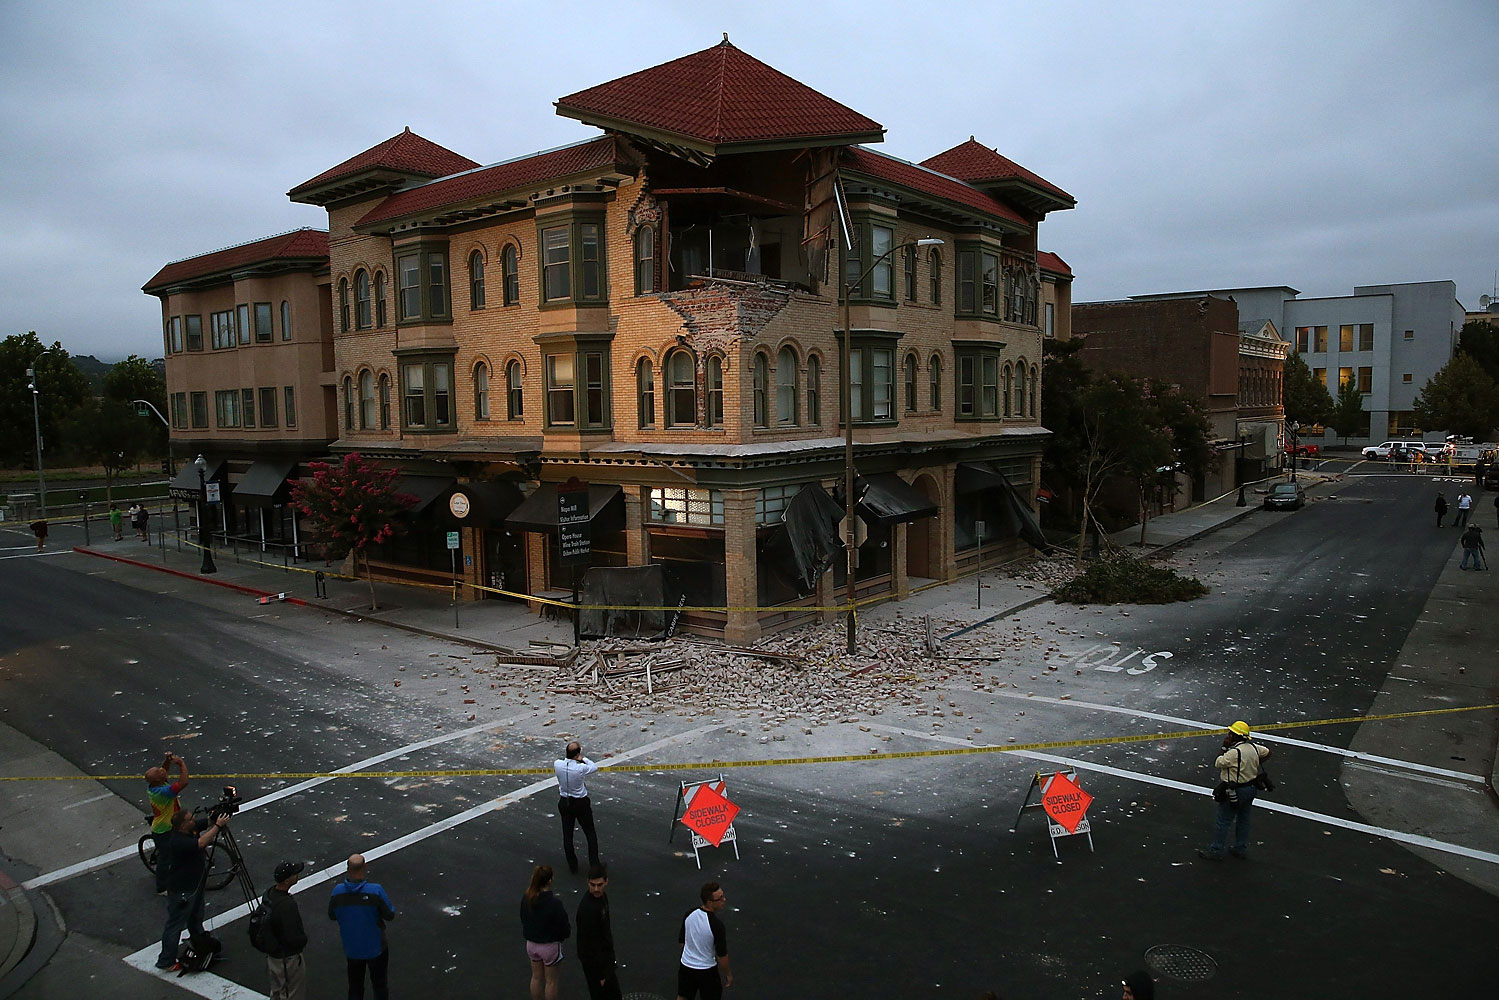 A building is seen destroyed following a reported 6.0 earthquake on Aug. 24, 2014 in Napa, Calif.